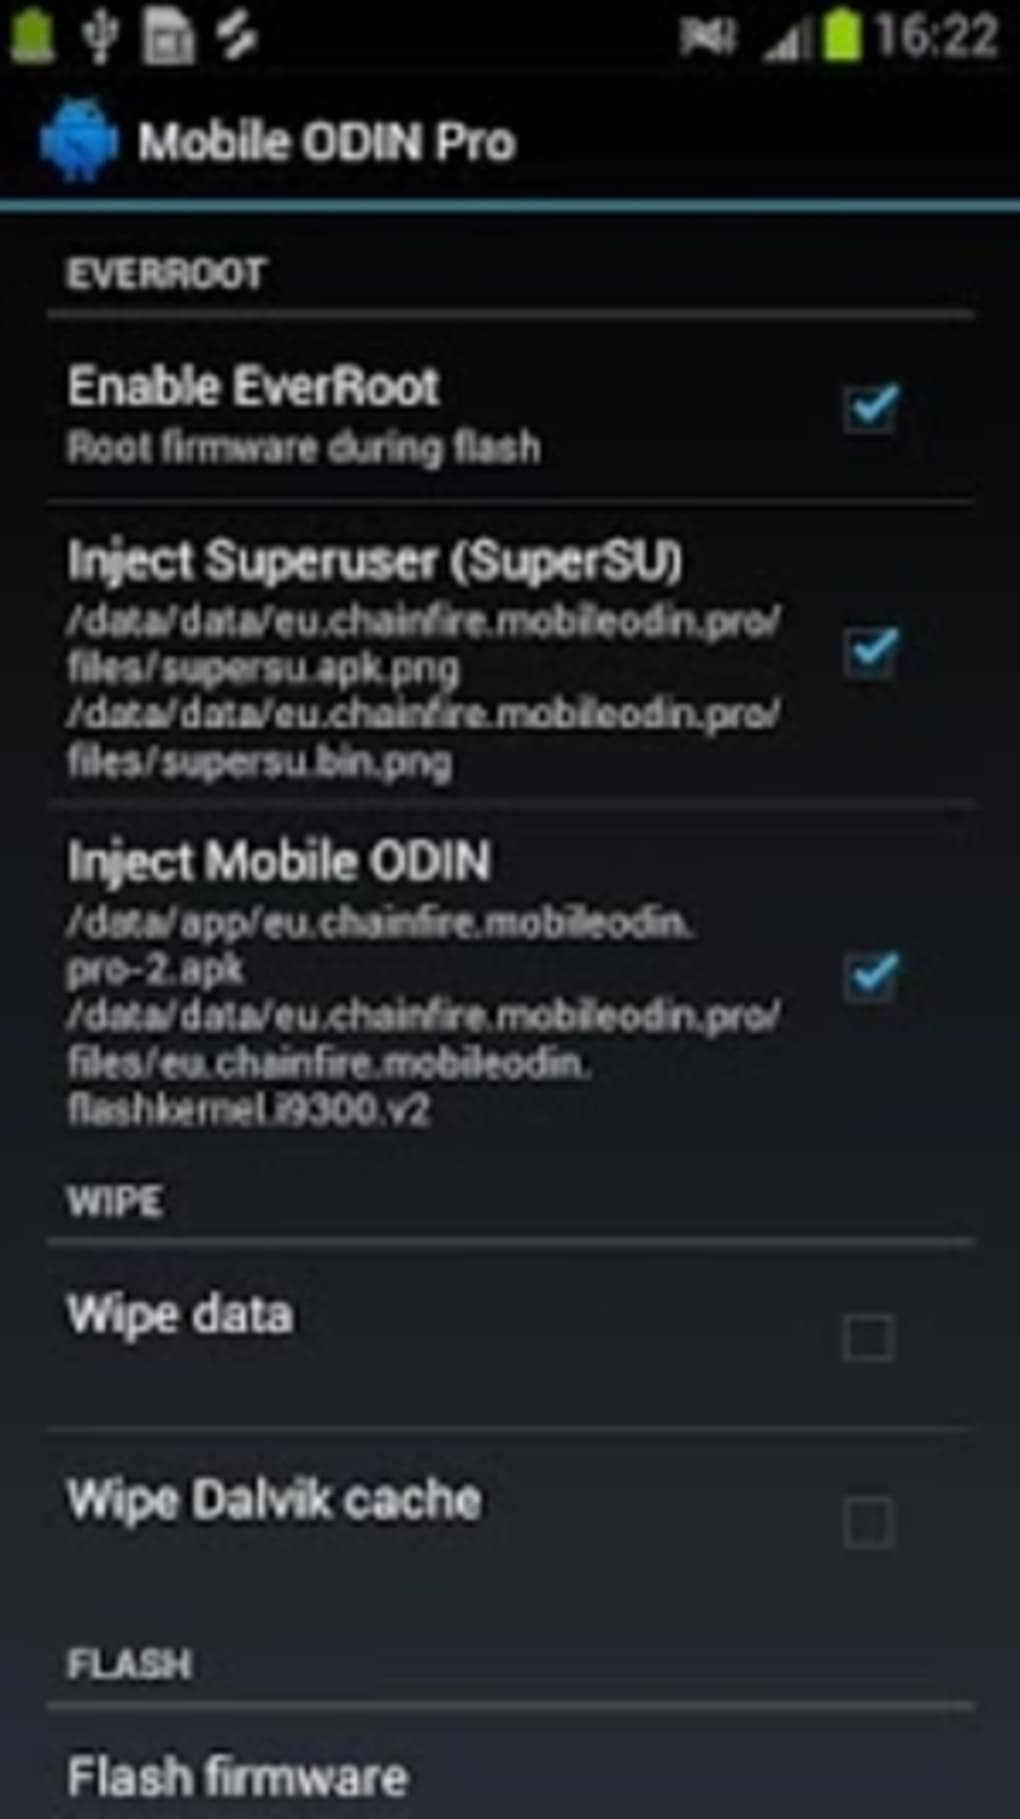 root] Mobile ODIN Pro for Android - Download